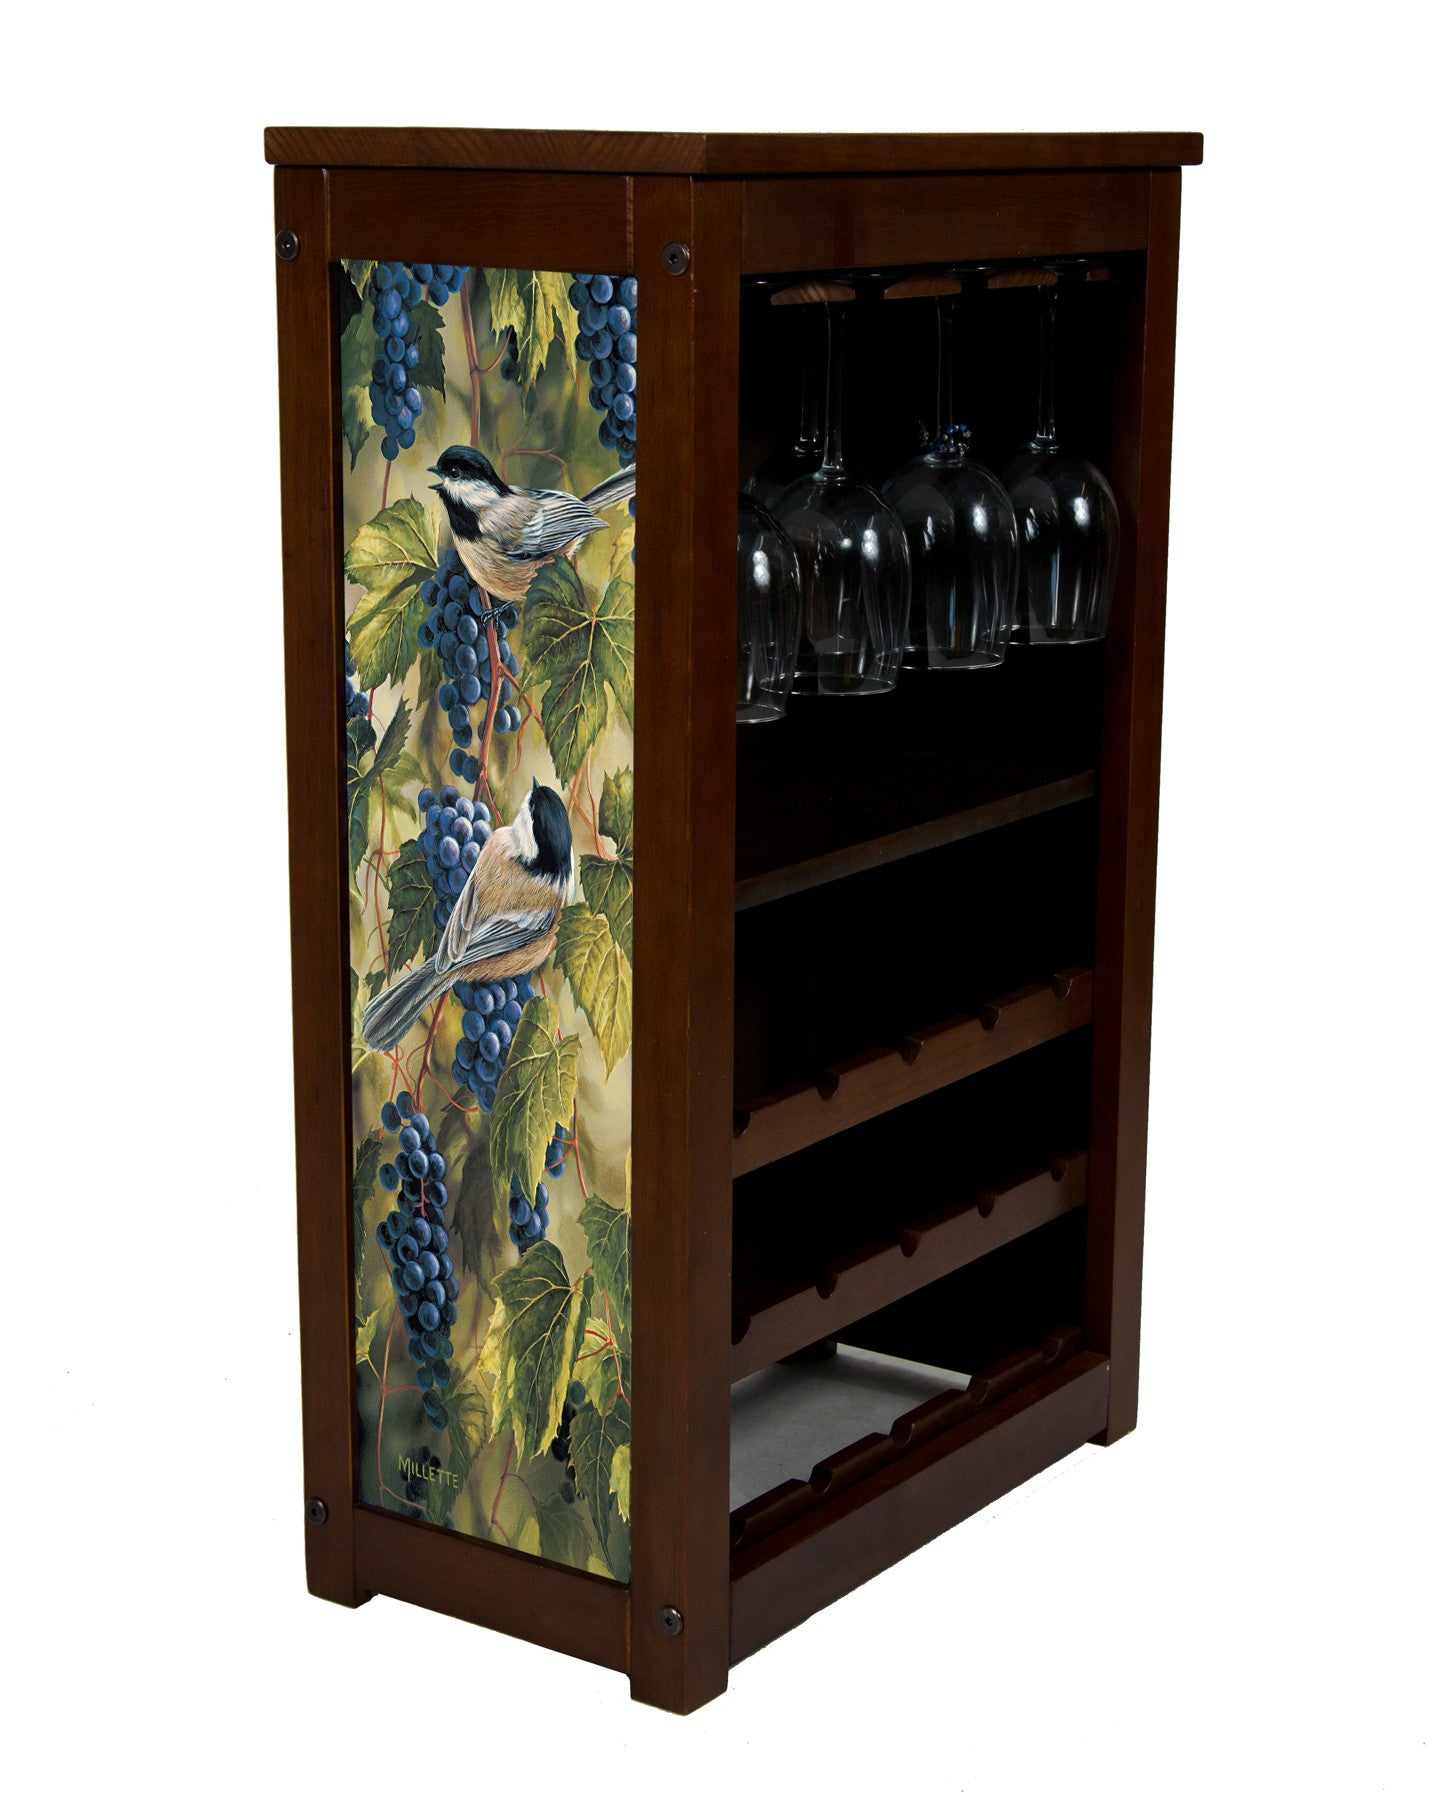 Chickadees Wine Cabinet by Rosemary Millette